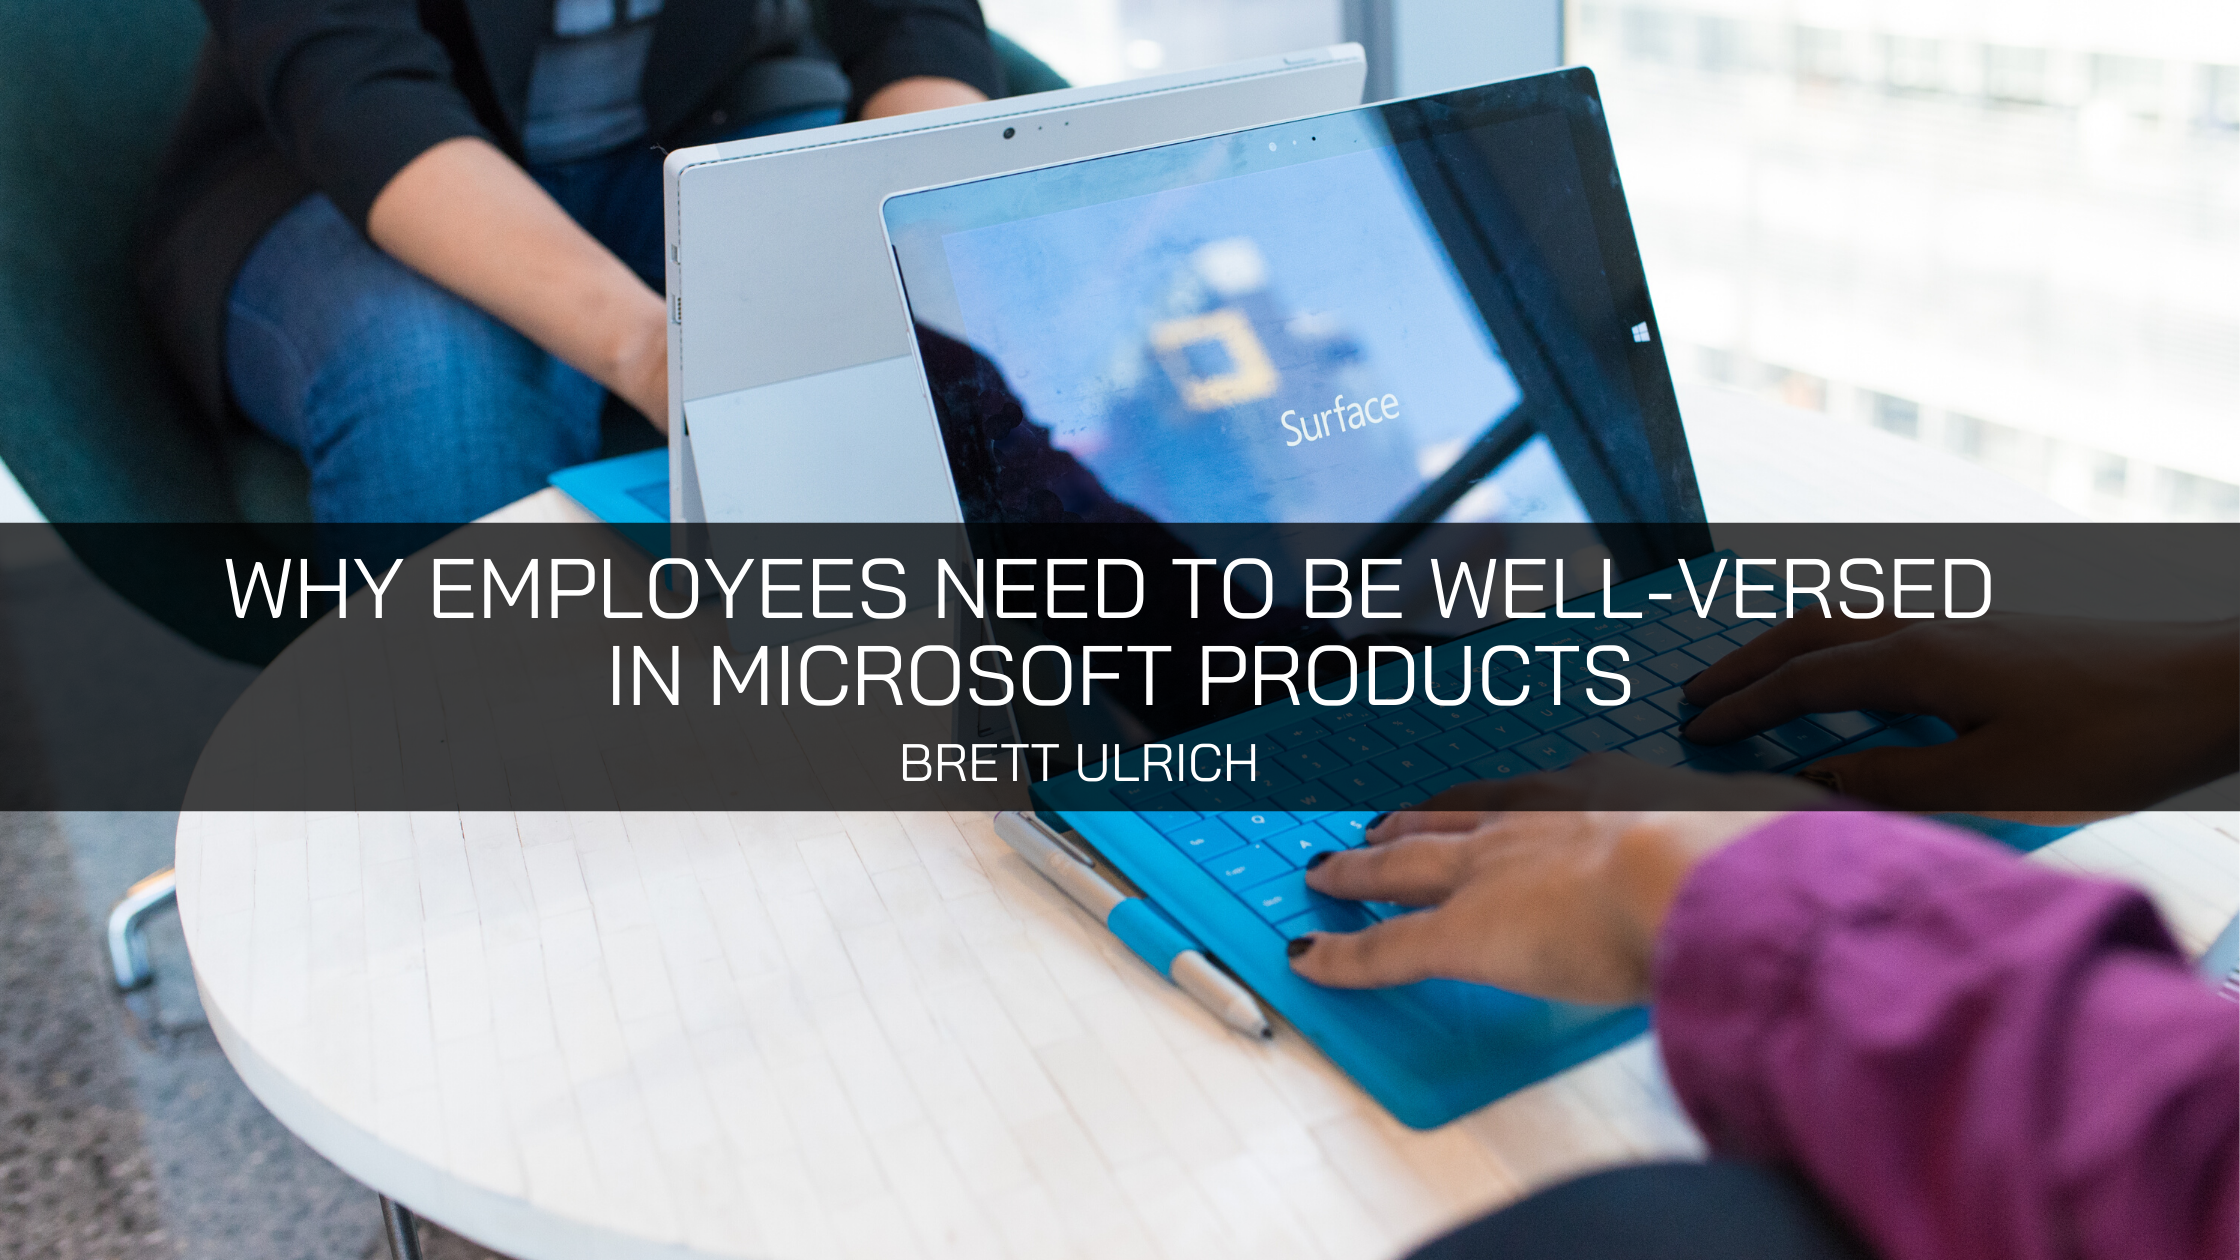 Brett Ulrich Explains Why Employees Need to be Well-Versed in Microsoft Products